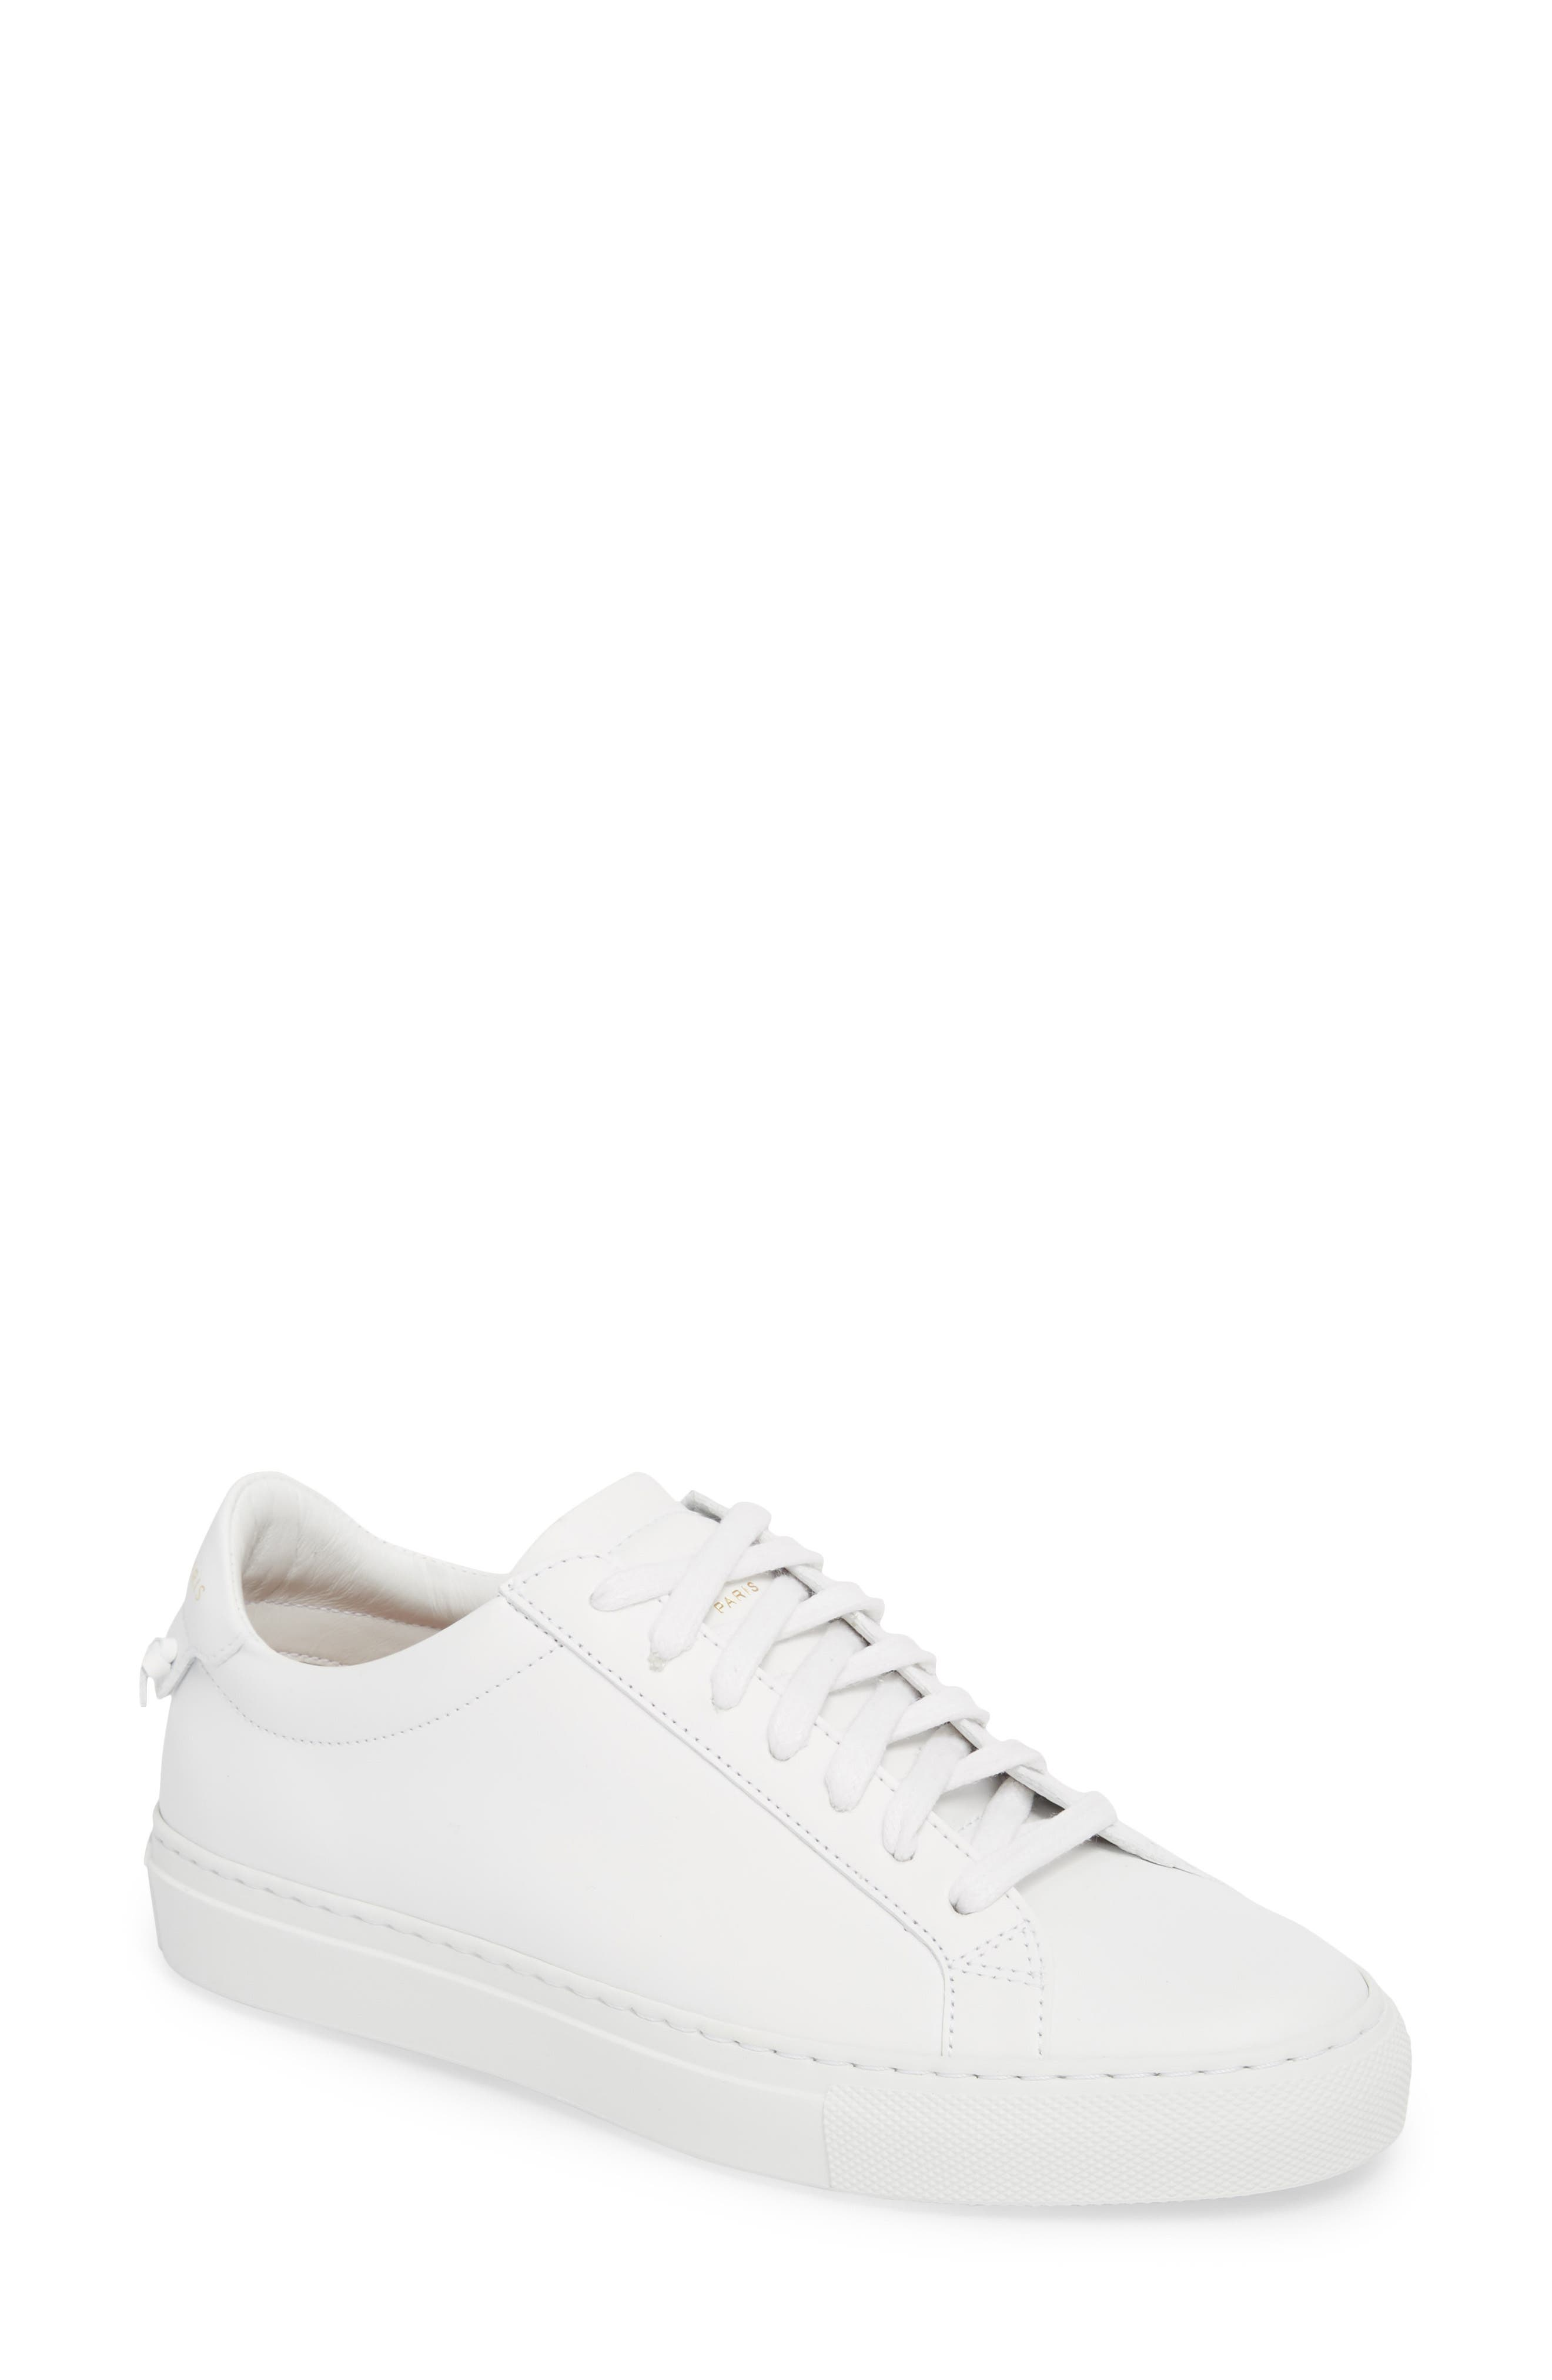 Alternate Image 1 Selected - Givenchy Low Top Sneaker (Women)